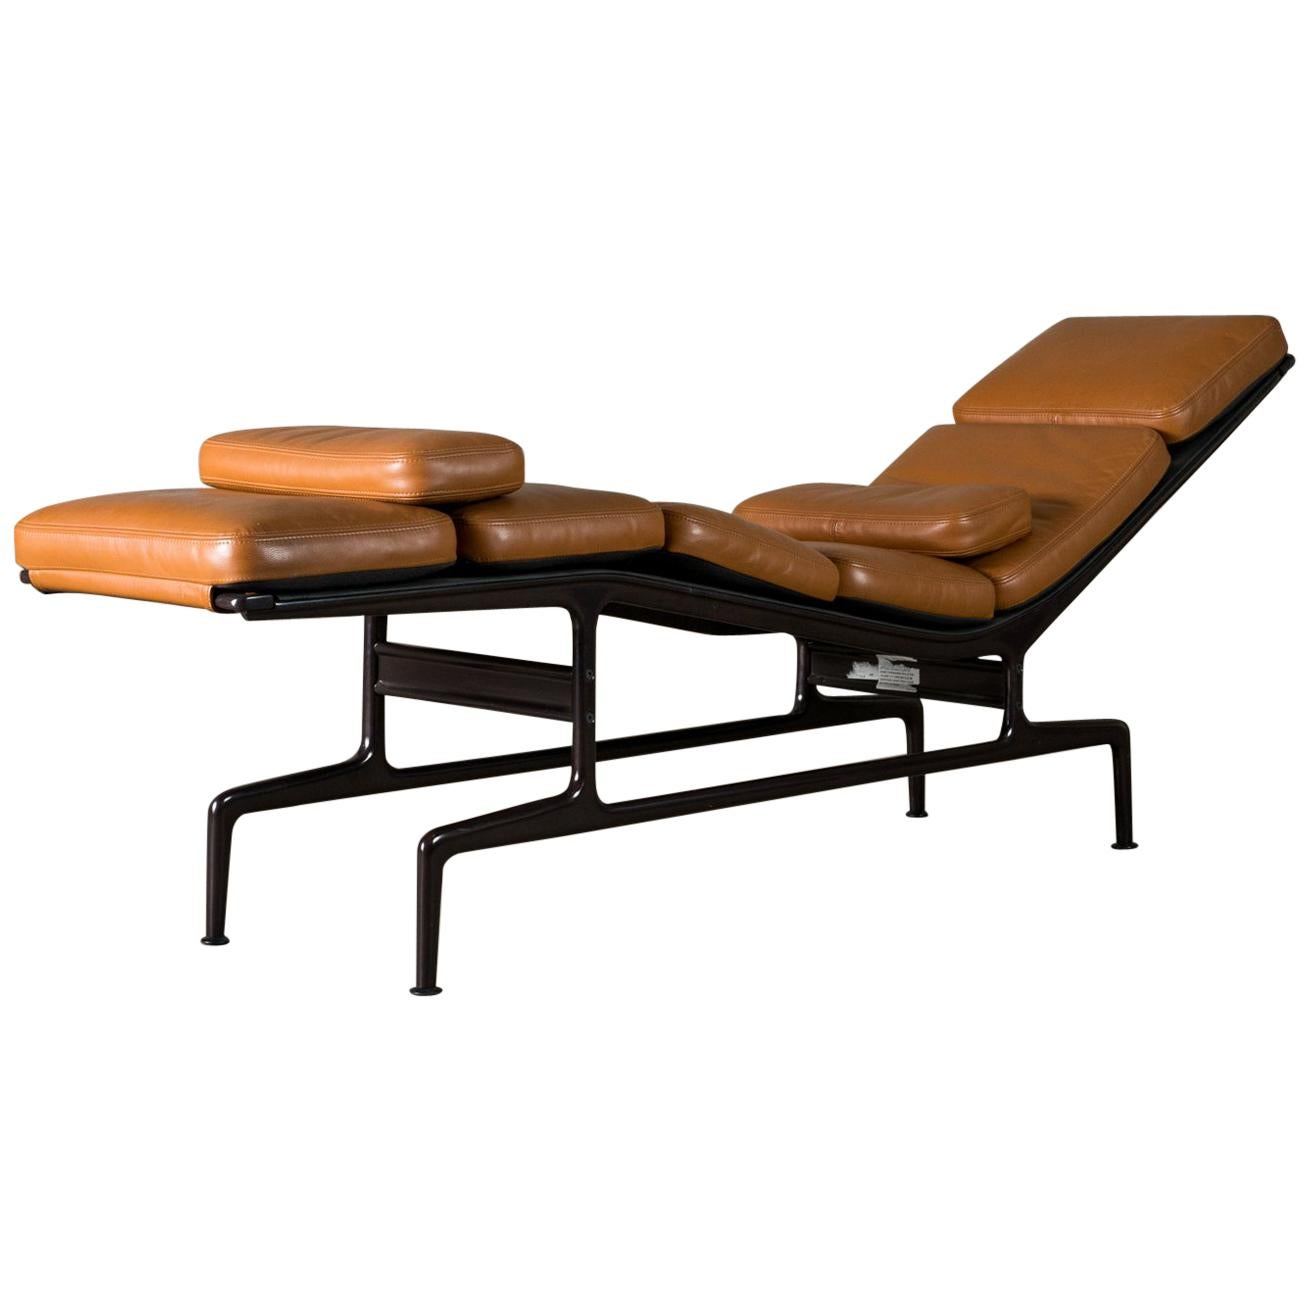 Chaise Design Eames Herman Miller Eames Chaise Lounge For Sale At 1stdibs